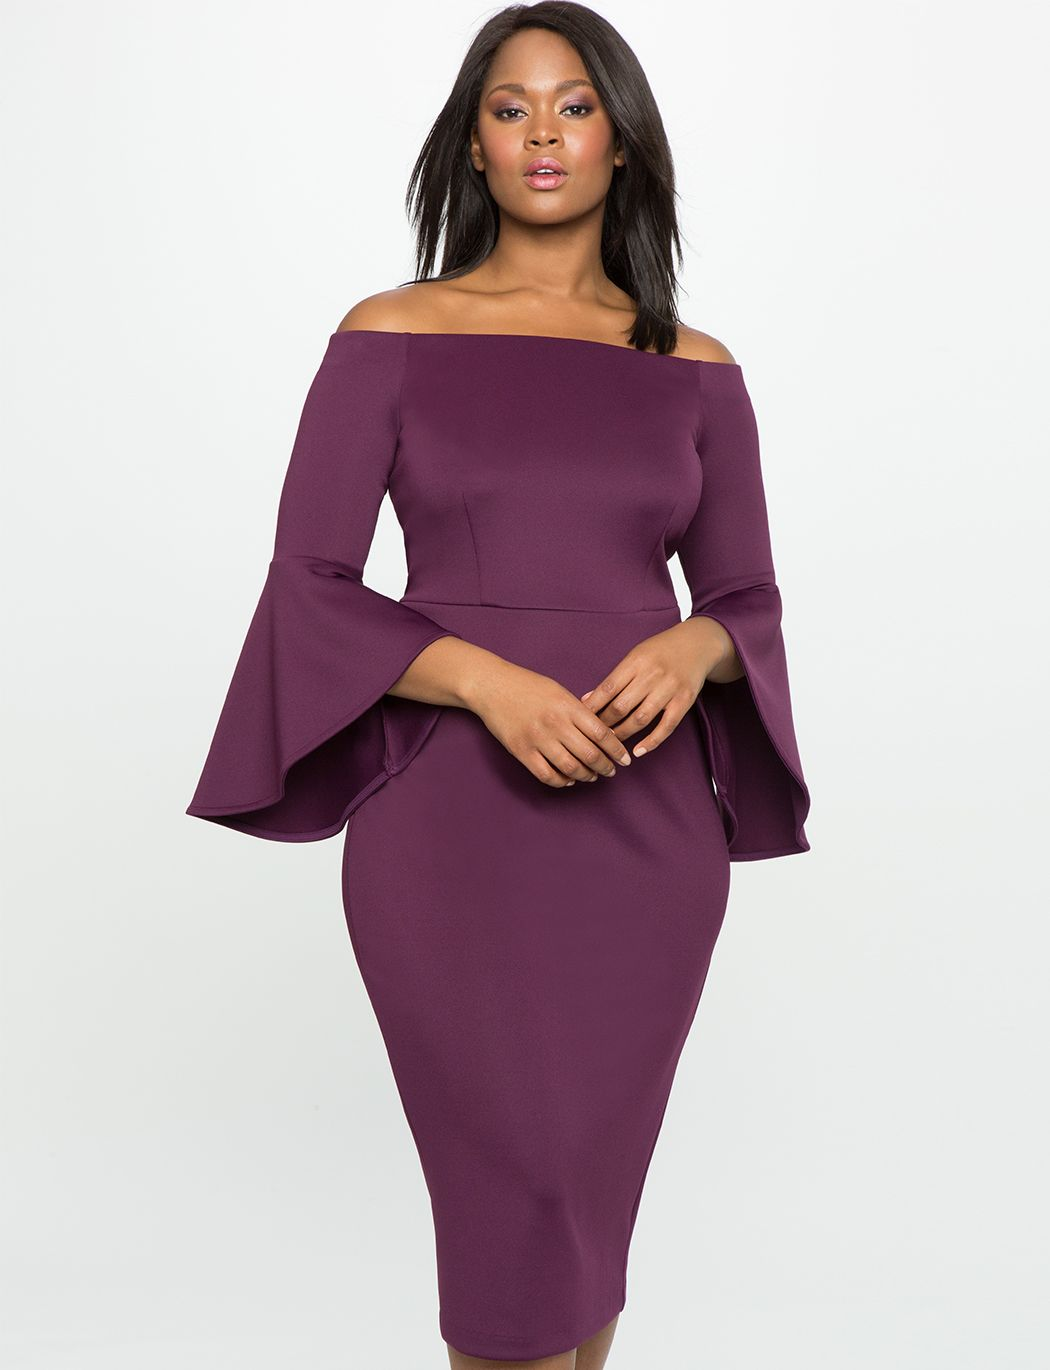 Studio Off the Shoulder Flare Sleeve Dress  aba21d3d51b4